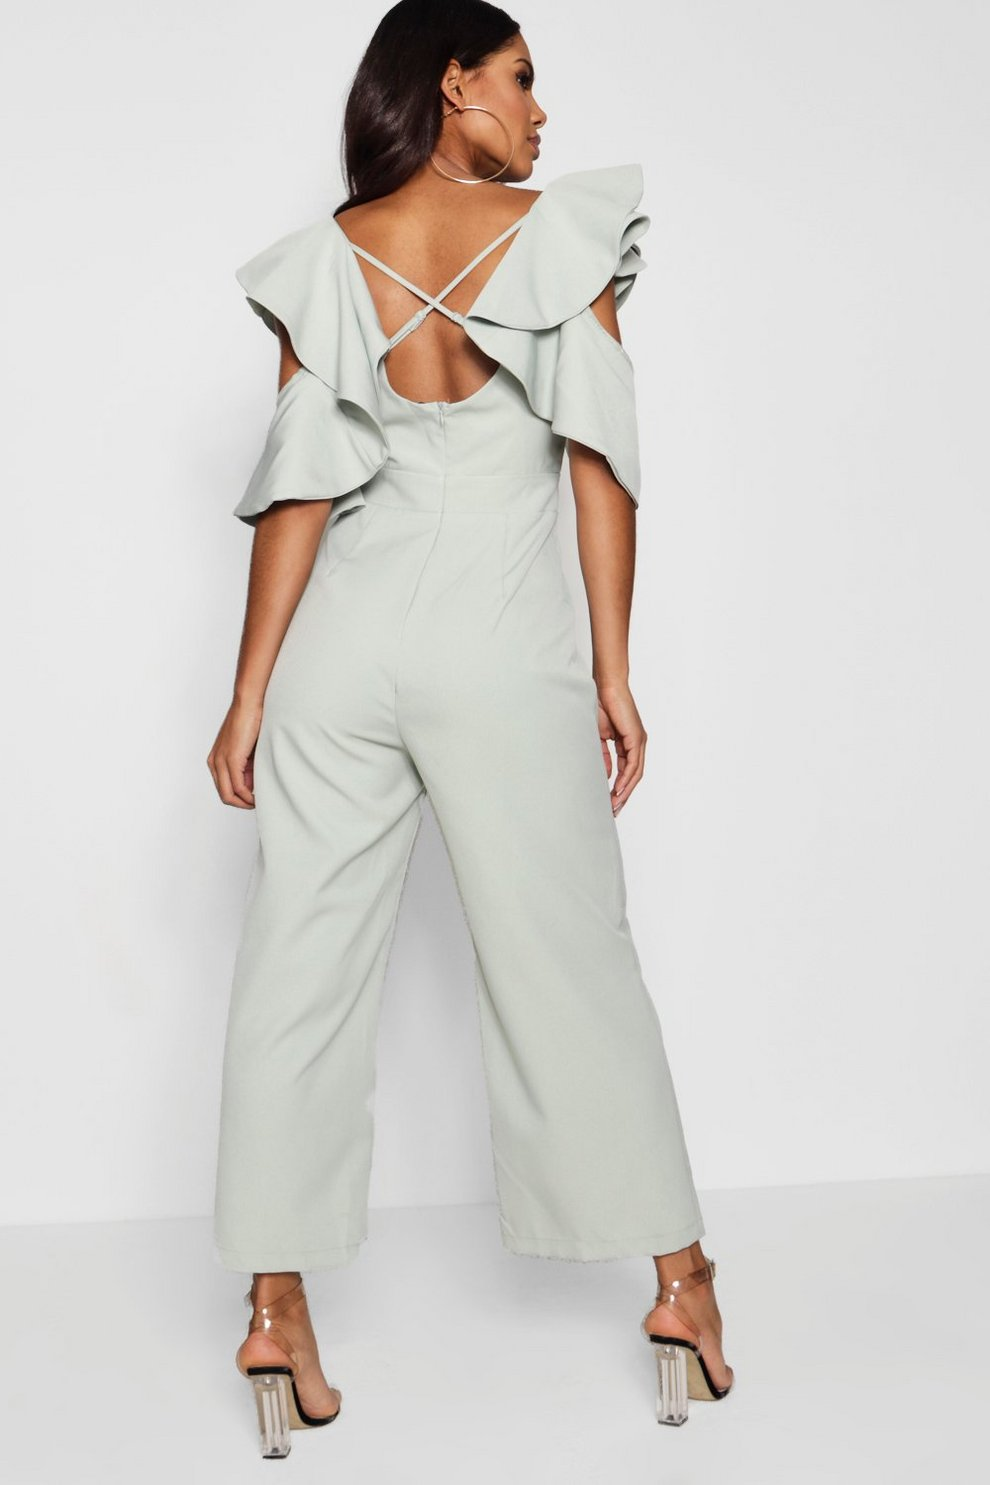 Boohoo Statement Ruffle Cross Back Jumpsuit